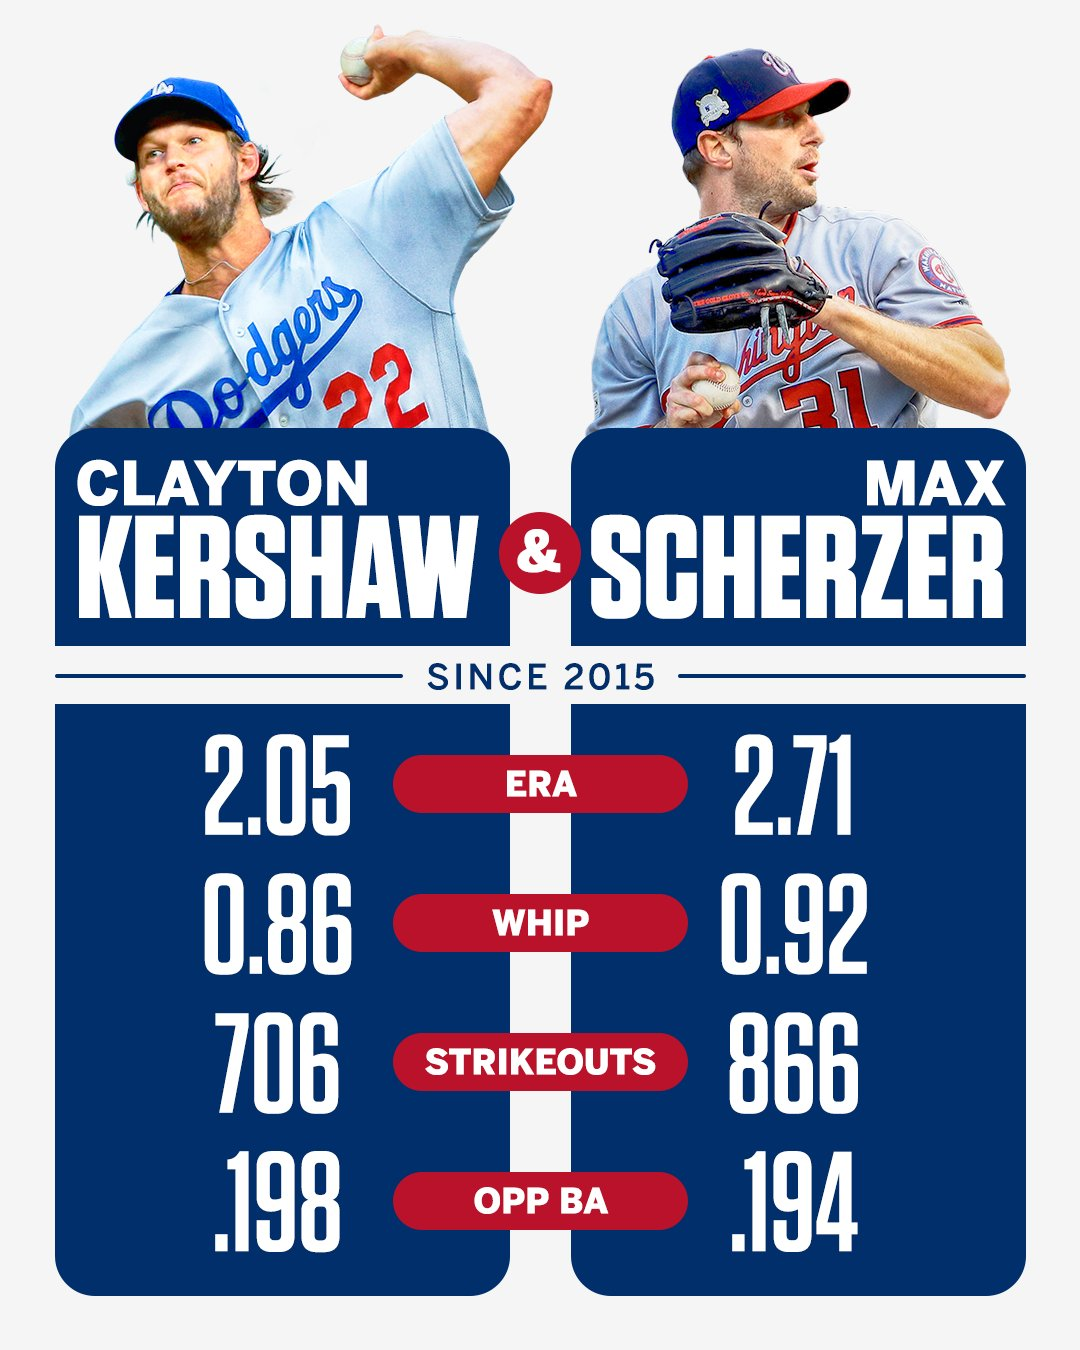 6 combined Cy Youngs 2 NL contenders 1 dream matchup tonight on ESPN+ https://t.co/uQ2CMa533m